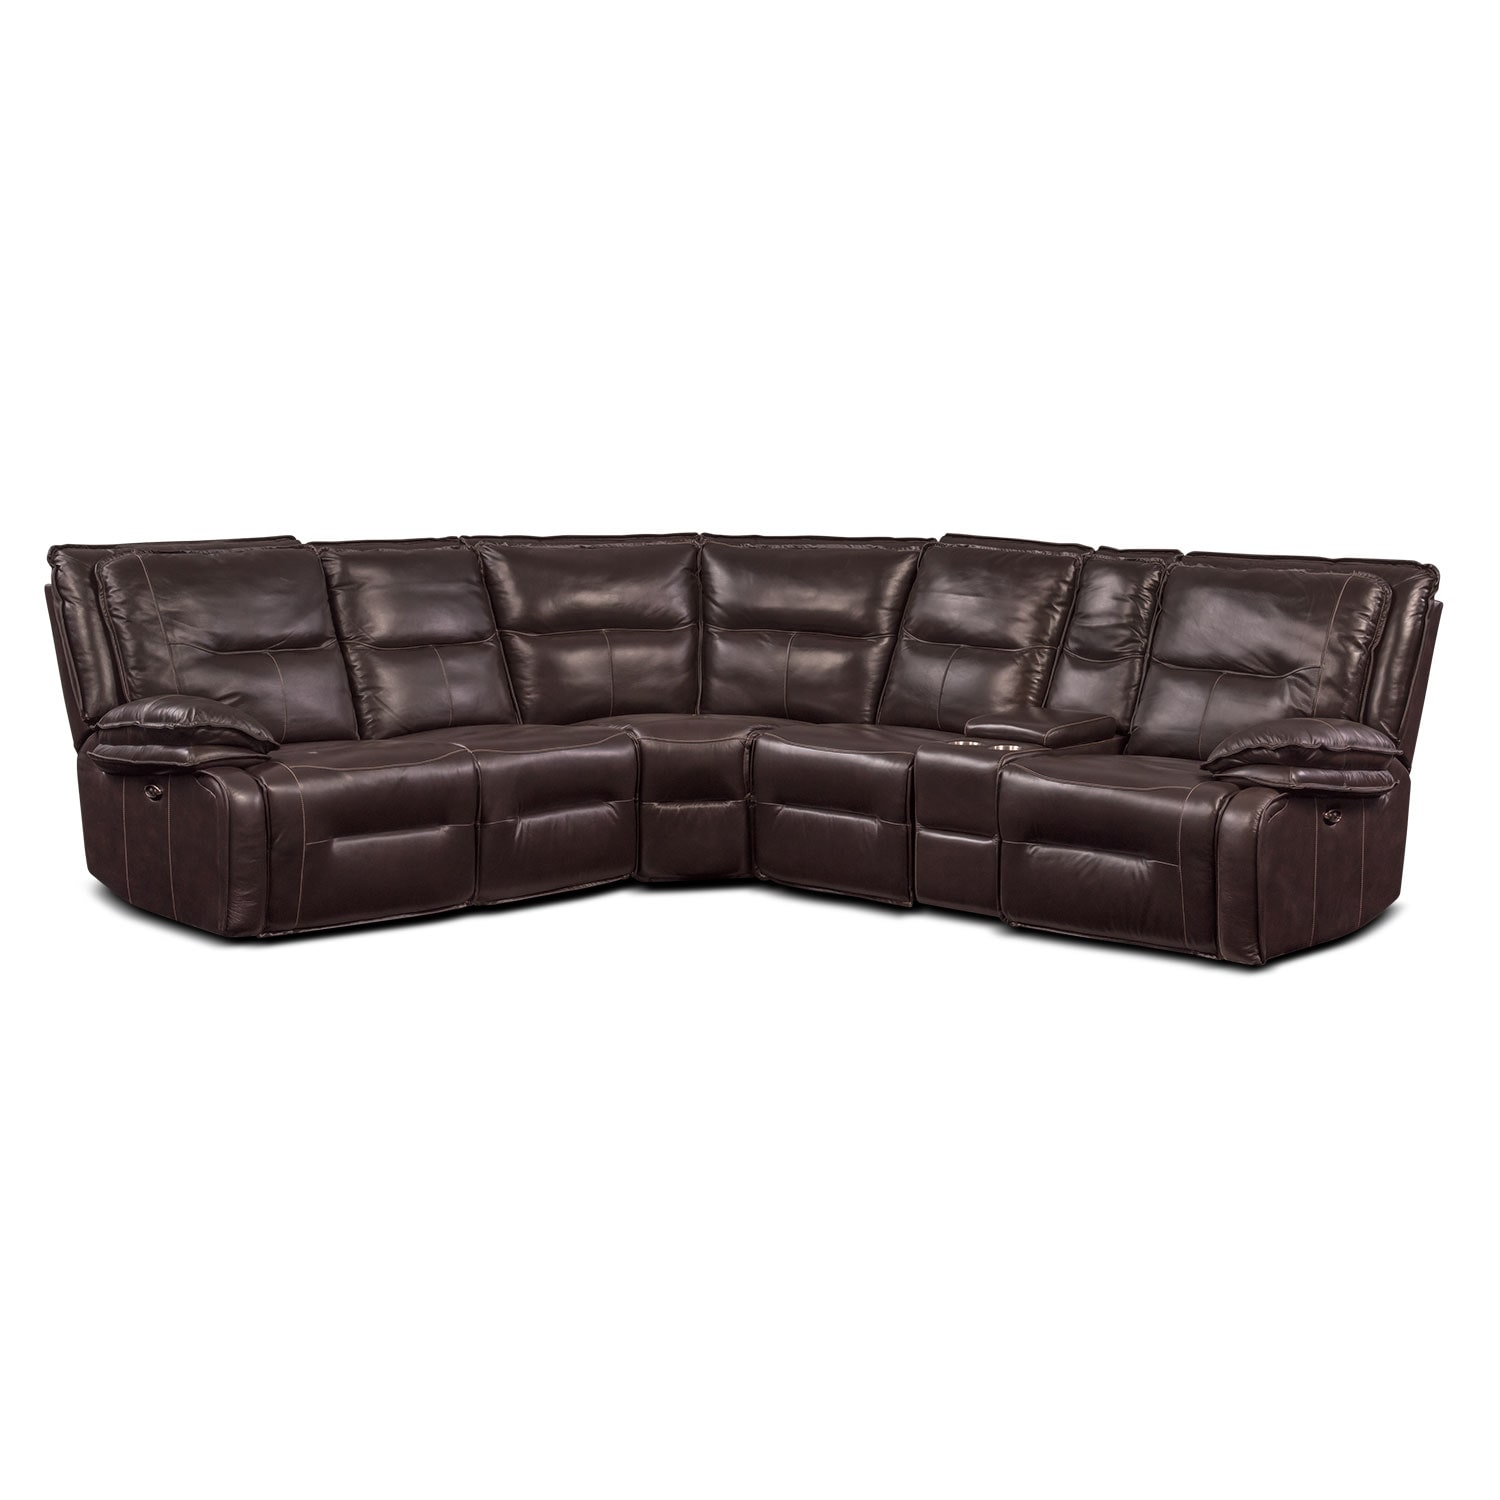 Living Room Furniture - Nikki 6-Piece Power Reclining Sectional with 2 Recliners - Brown